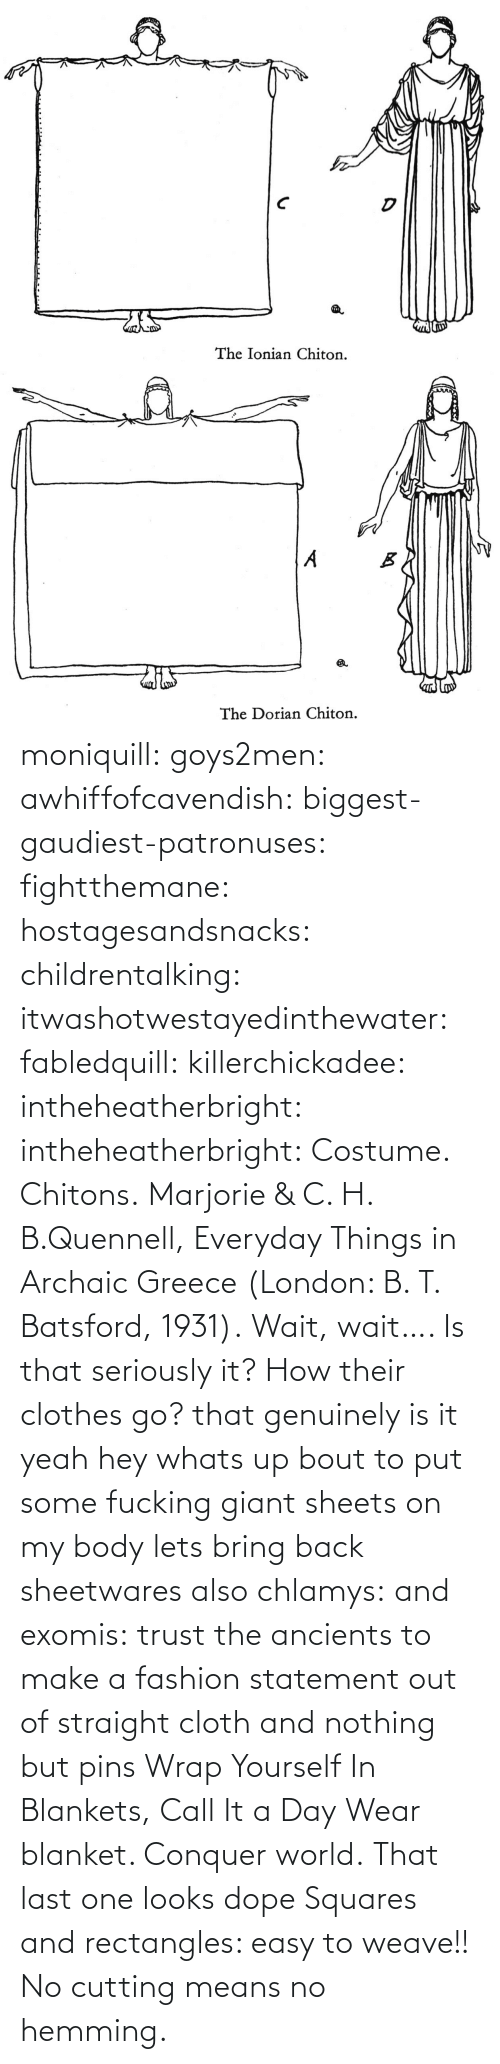 Clothes, Dope, and Fashion: moniquill: goys2men:  awhiffofcavendish:  biggest-gaudiest-patronuses:  fightthemane:  hostagesandsnacks:  childrentalking:  itwashotwestayedinthewater:  fabledquill:  killerchickadee:  intheheatherbright:  intheheatherbright:  Costume. Chitons.  Marjorie & C. H. B.Quennell, Everyday Things in Archaic Greece (London: B. T. Batsford, 1931).  Wait, wait…. Is that seriously it? How their clothes go?  that genuinely is it  yeah hey whats up bout to put some fucking giant sheets on my body  lets bring back sheetwares  also chlamys: and exomis:  trust the ancients to make a fashion statement out of straight cloth and nothing but pins  Wrap Yourself In Blankets, Call It a Day  Wear blanket. Conquer world.   That last one looks dope    Squares and rectangles: easy to weave!! No cutting means no hemming.